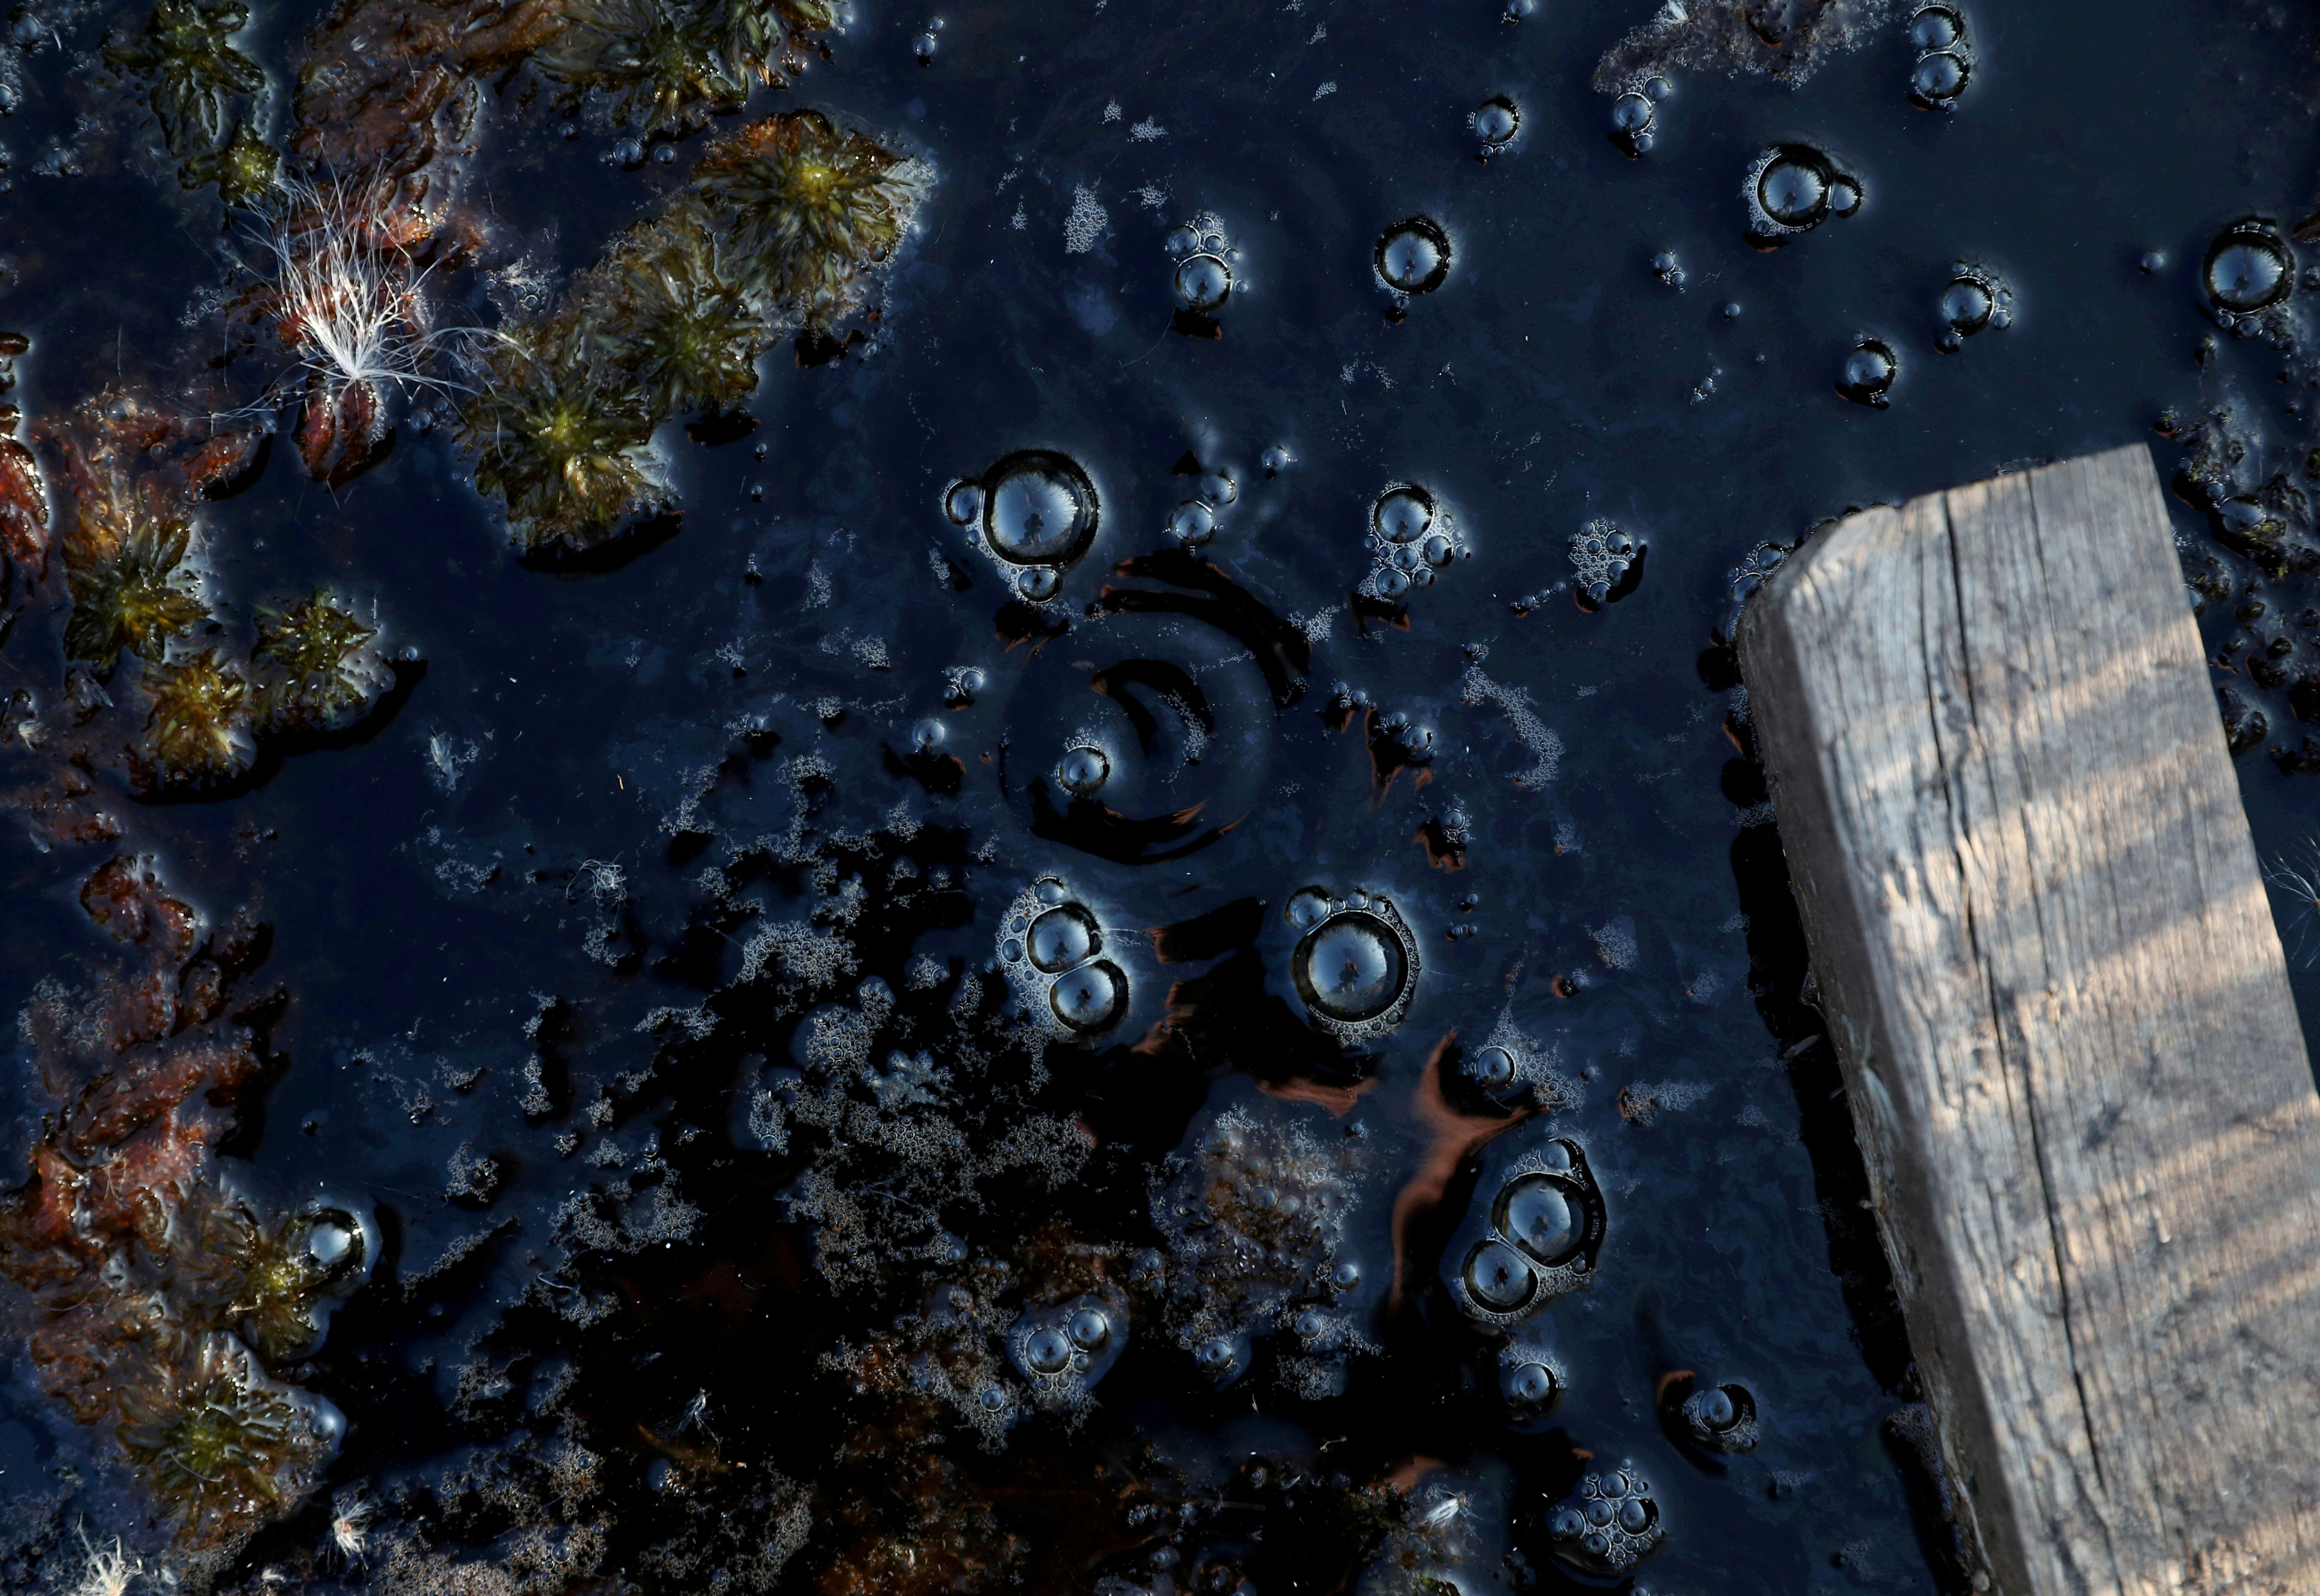 Methane bubbles are seen in an area of marshland at a research post at Stordalen Mire near Abisko, Sweden, August 1, 2019.REUTERS/Hannah McKay/File Photo